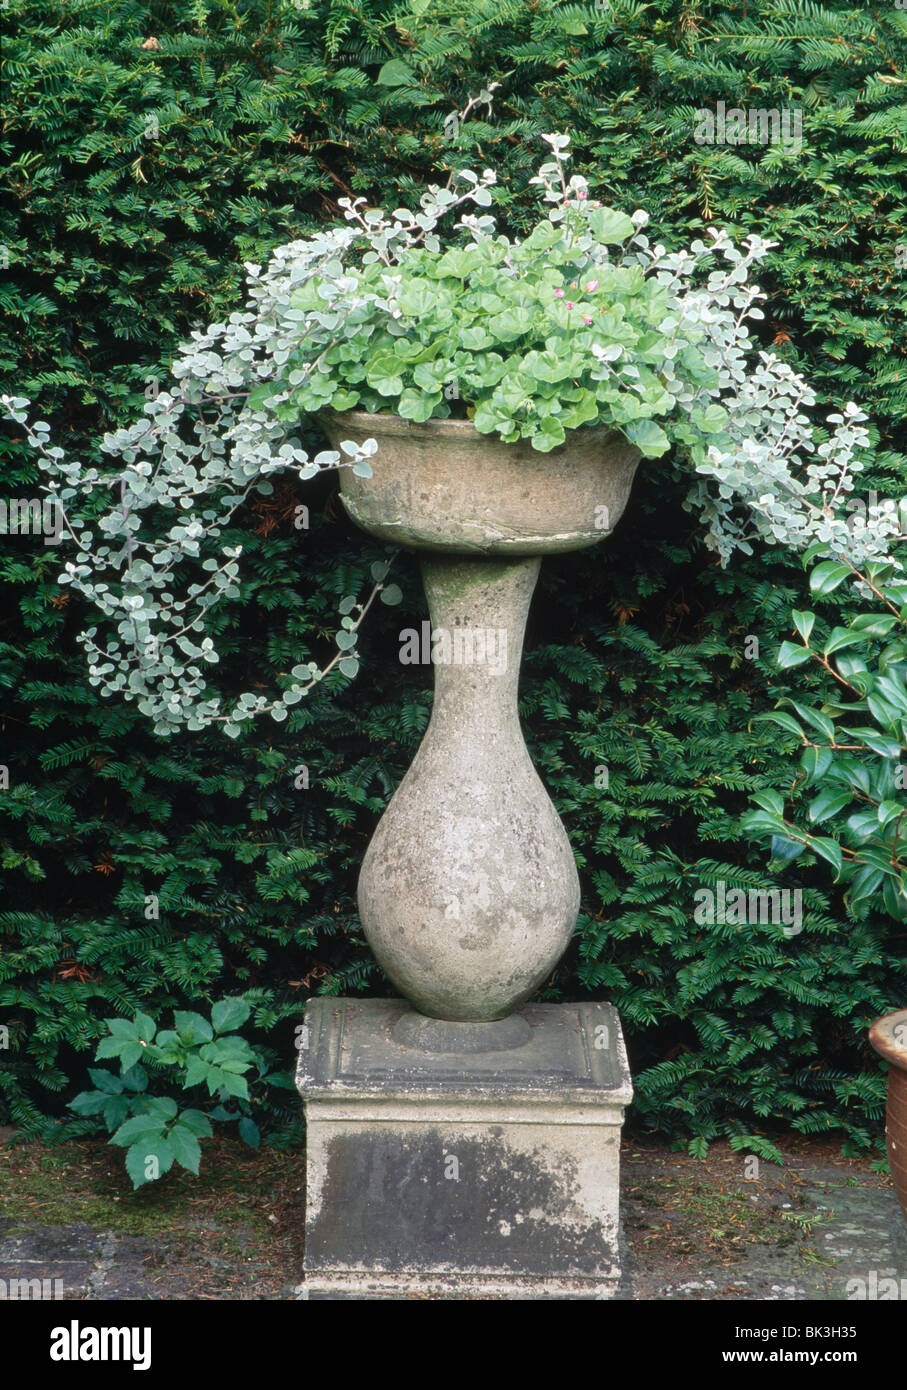 Themed Planting Of Silver And Green In A Stone Urn On Plinth By A